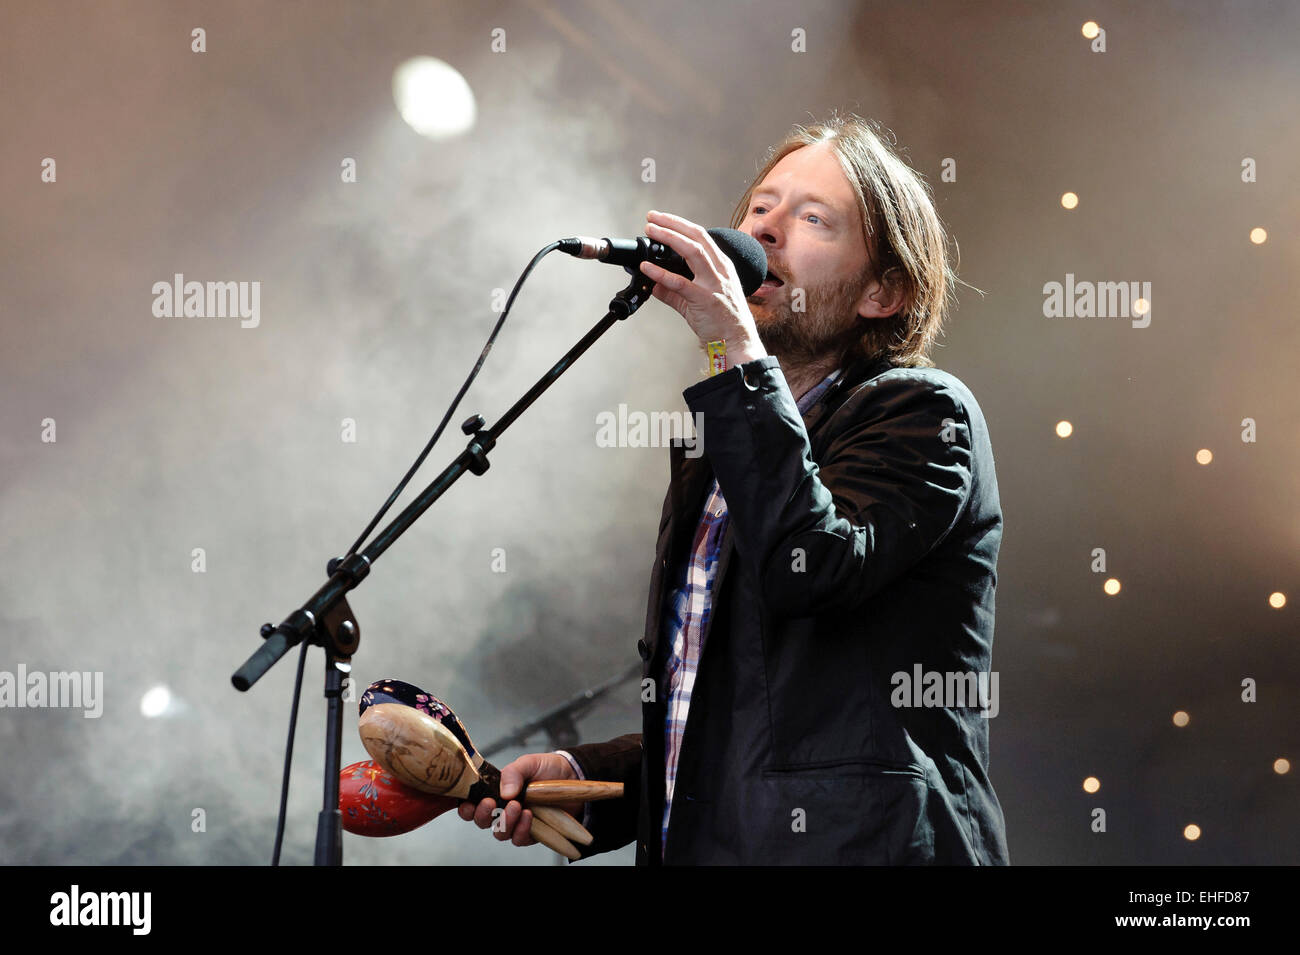 Radiohead surprise guests on the Park stage at Glastonbury festival Friday 24th June 2011. - Stock Image